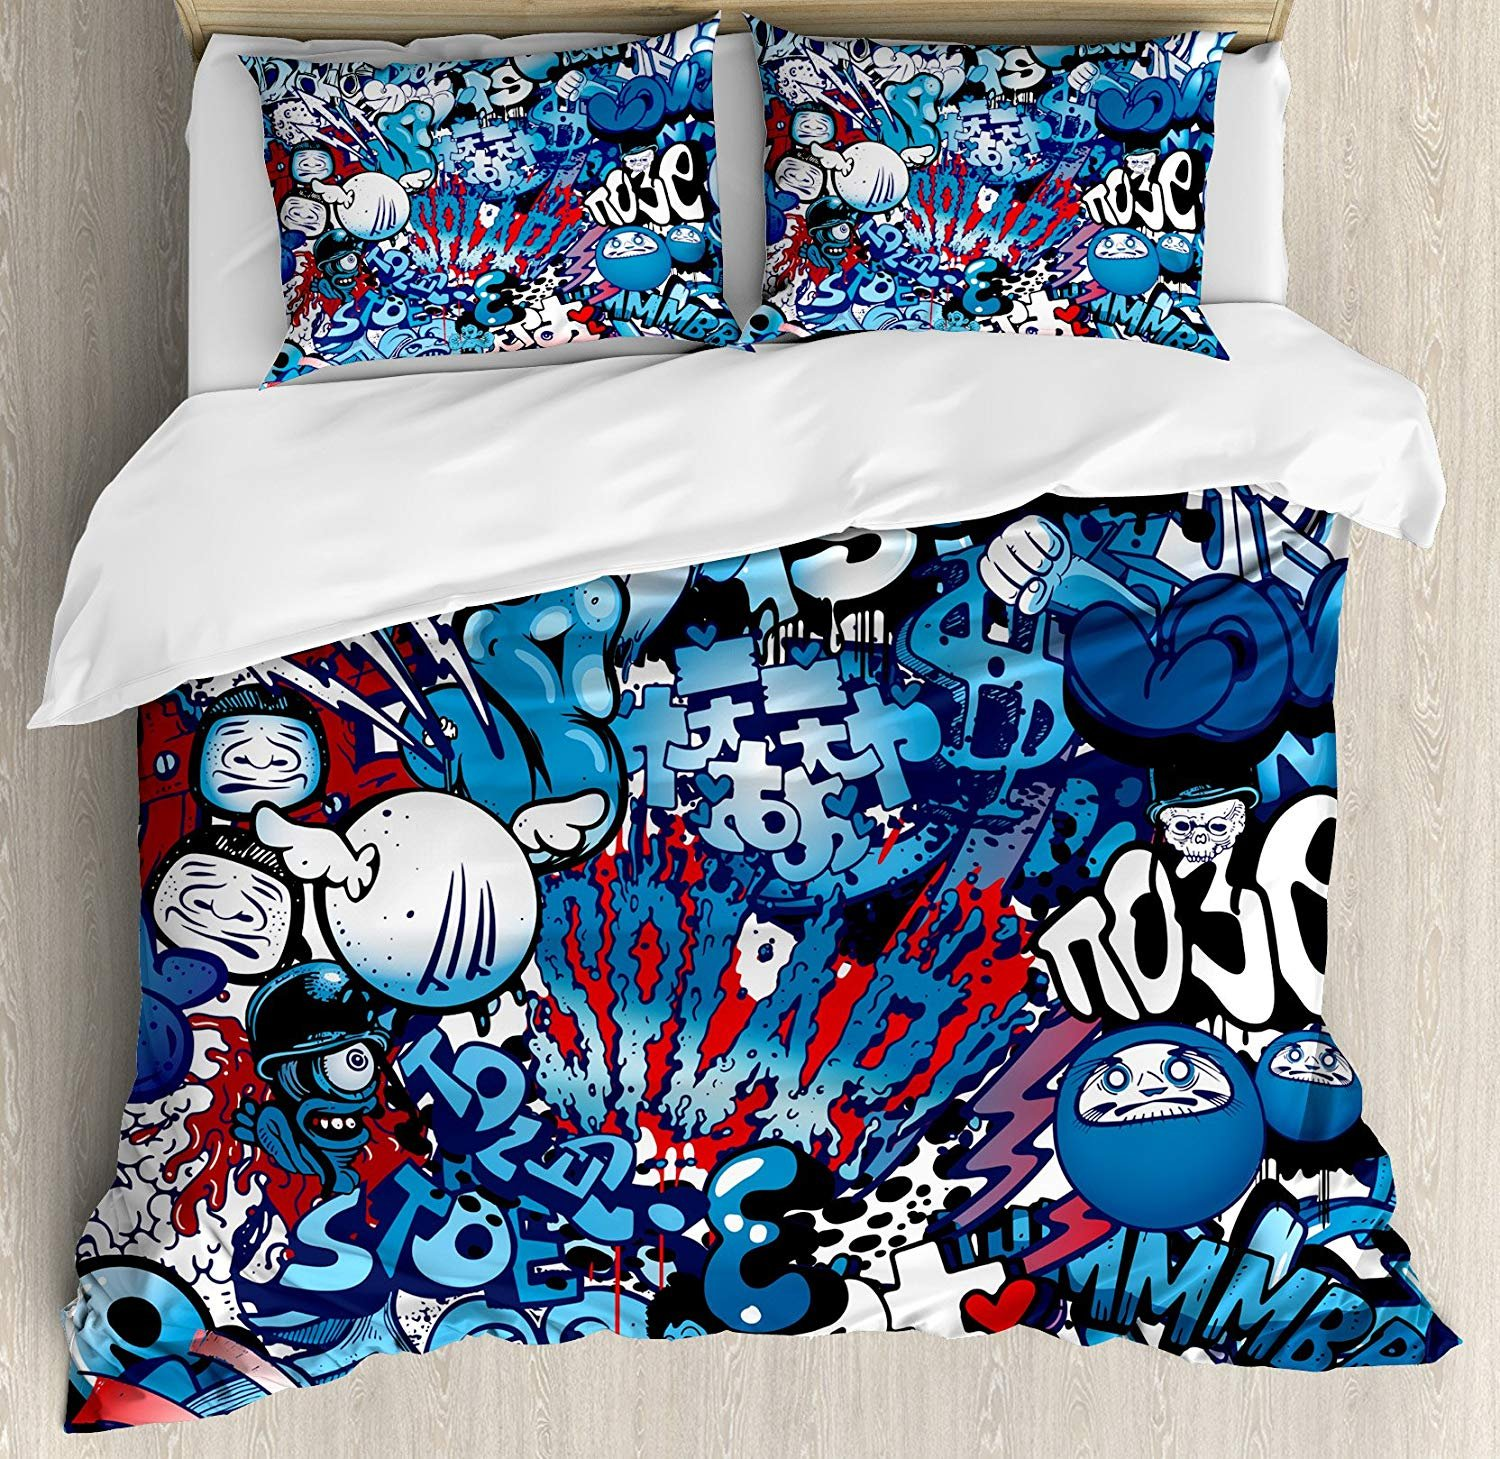 IDOWMAT Modern Twin Duvet Cover Sets 4 Piece Bedding Set Bedspread with 2 Pillow Sham, Flat Sheet for Adult/Kids/Teens, Teenager Style Image Street Wall Graffiti Graphic Colorful Design Artwork Print